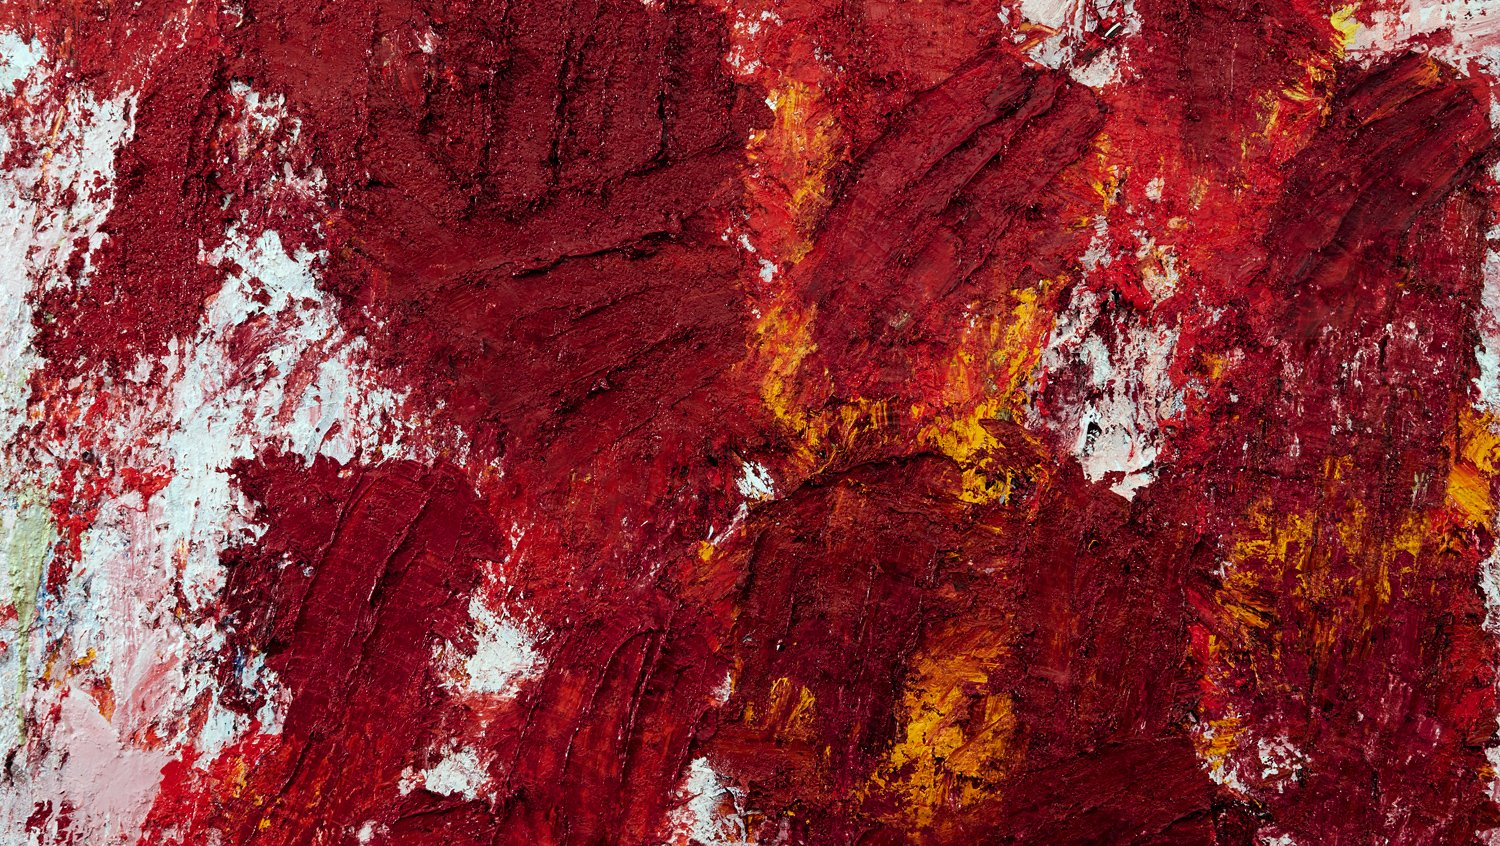 Aida Tomescu, In a carpet made of water, in a carpet made of earth (detail)